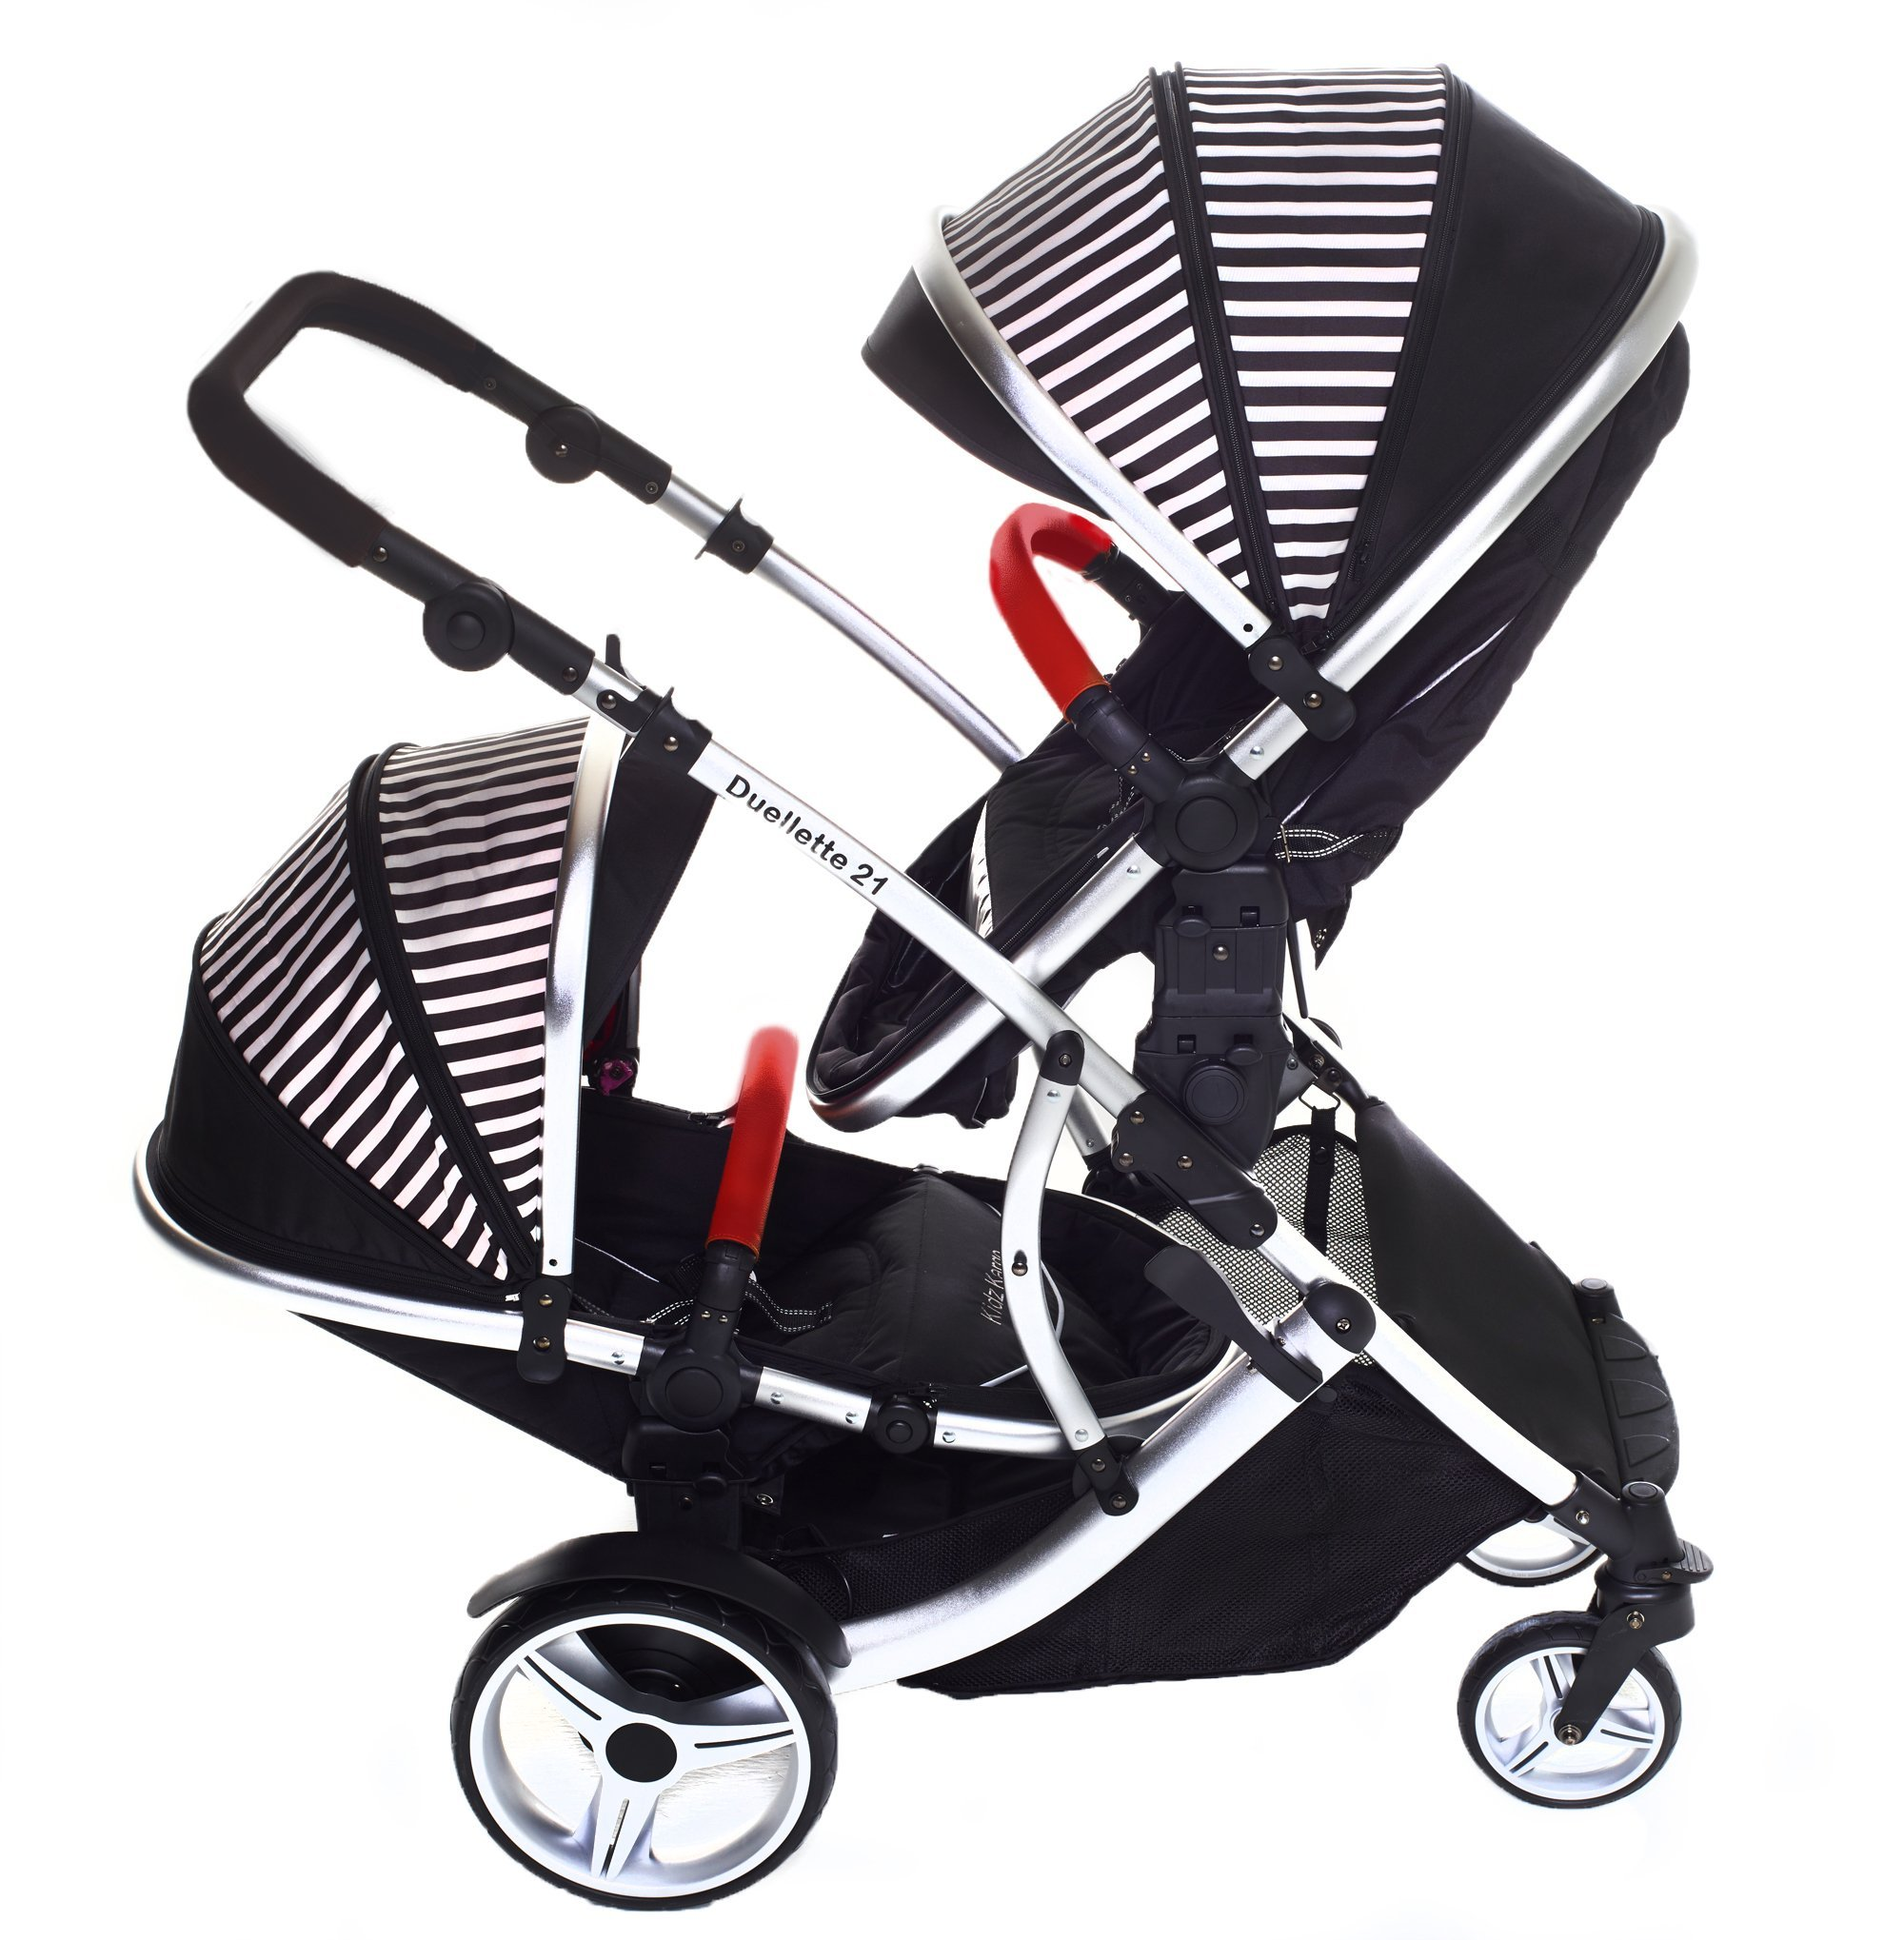 Duellette 21 BS Twin Double Pushchair Stroller Buggy Brand New Colour Range! (Oxford stripe plain bumpers) Kids Kargo Demo video please see link http://youtu.be/Ngj0yD3TMSM Various seat positions. Both seats can face mum (ideal for twins) Suitability Newborn Twins (if used with car seats) or Newborn/toddler. Accommodates 1 or 2 car seats 4